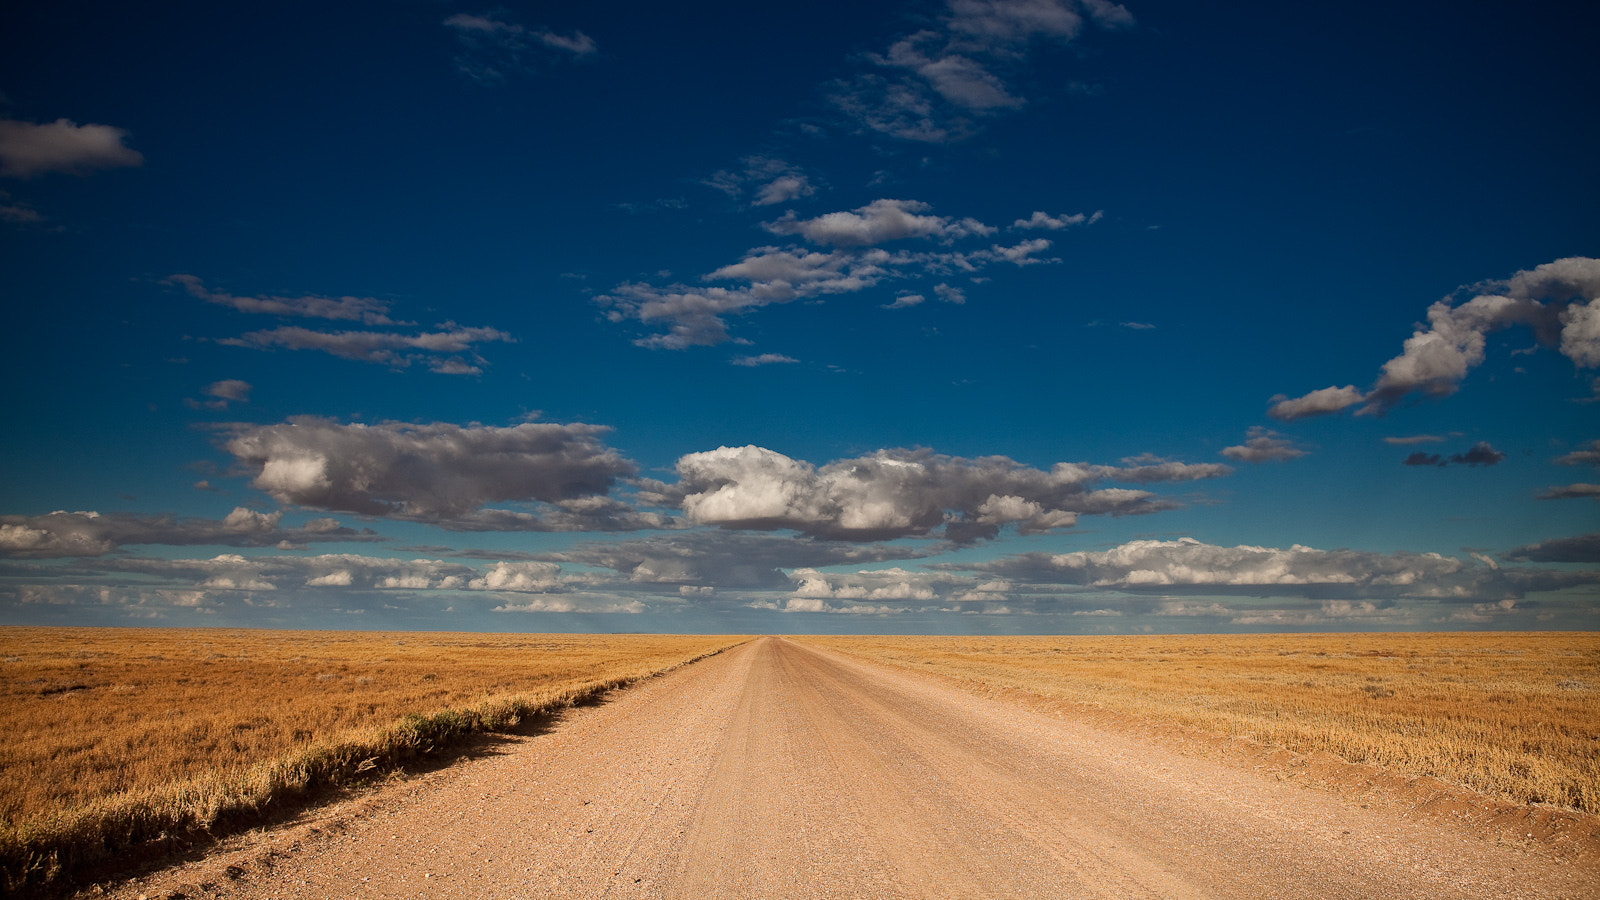 Photograph The long road to somewhere else. by Josh Robertson on 500px